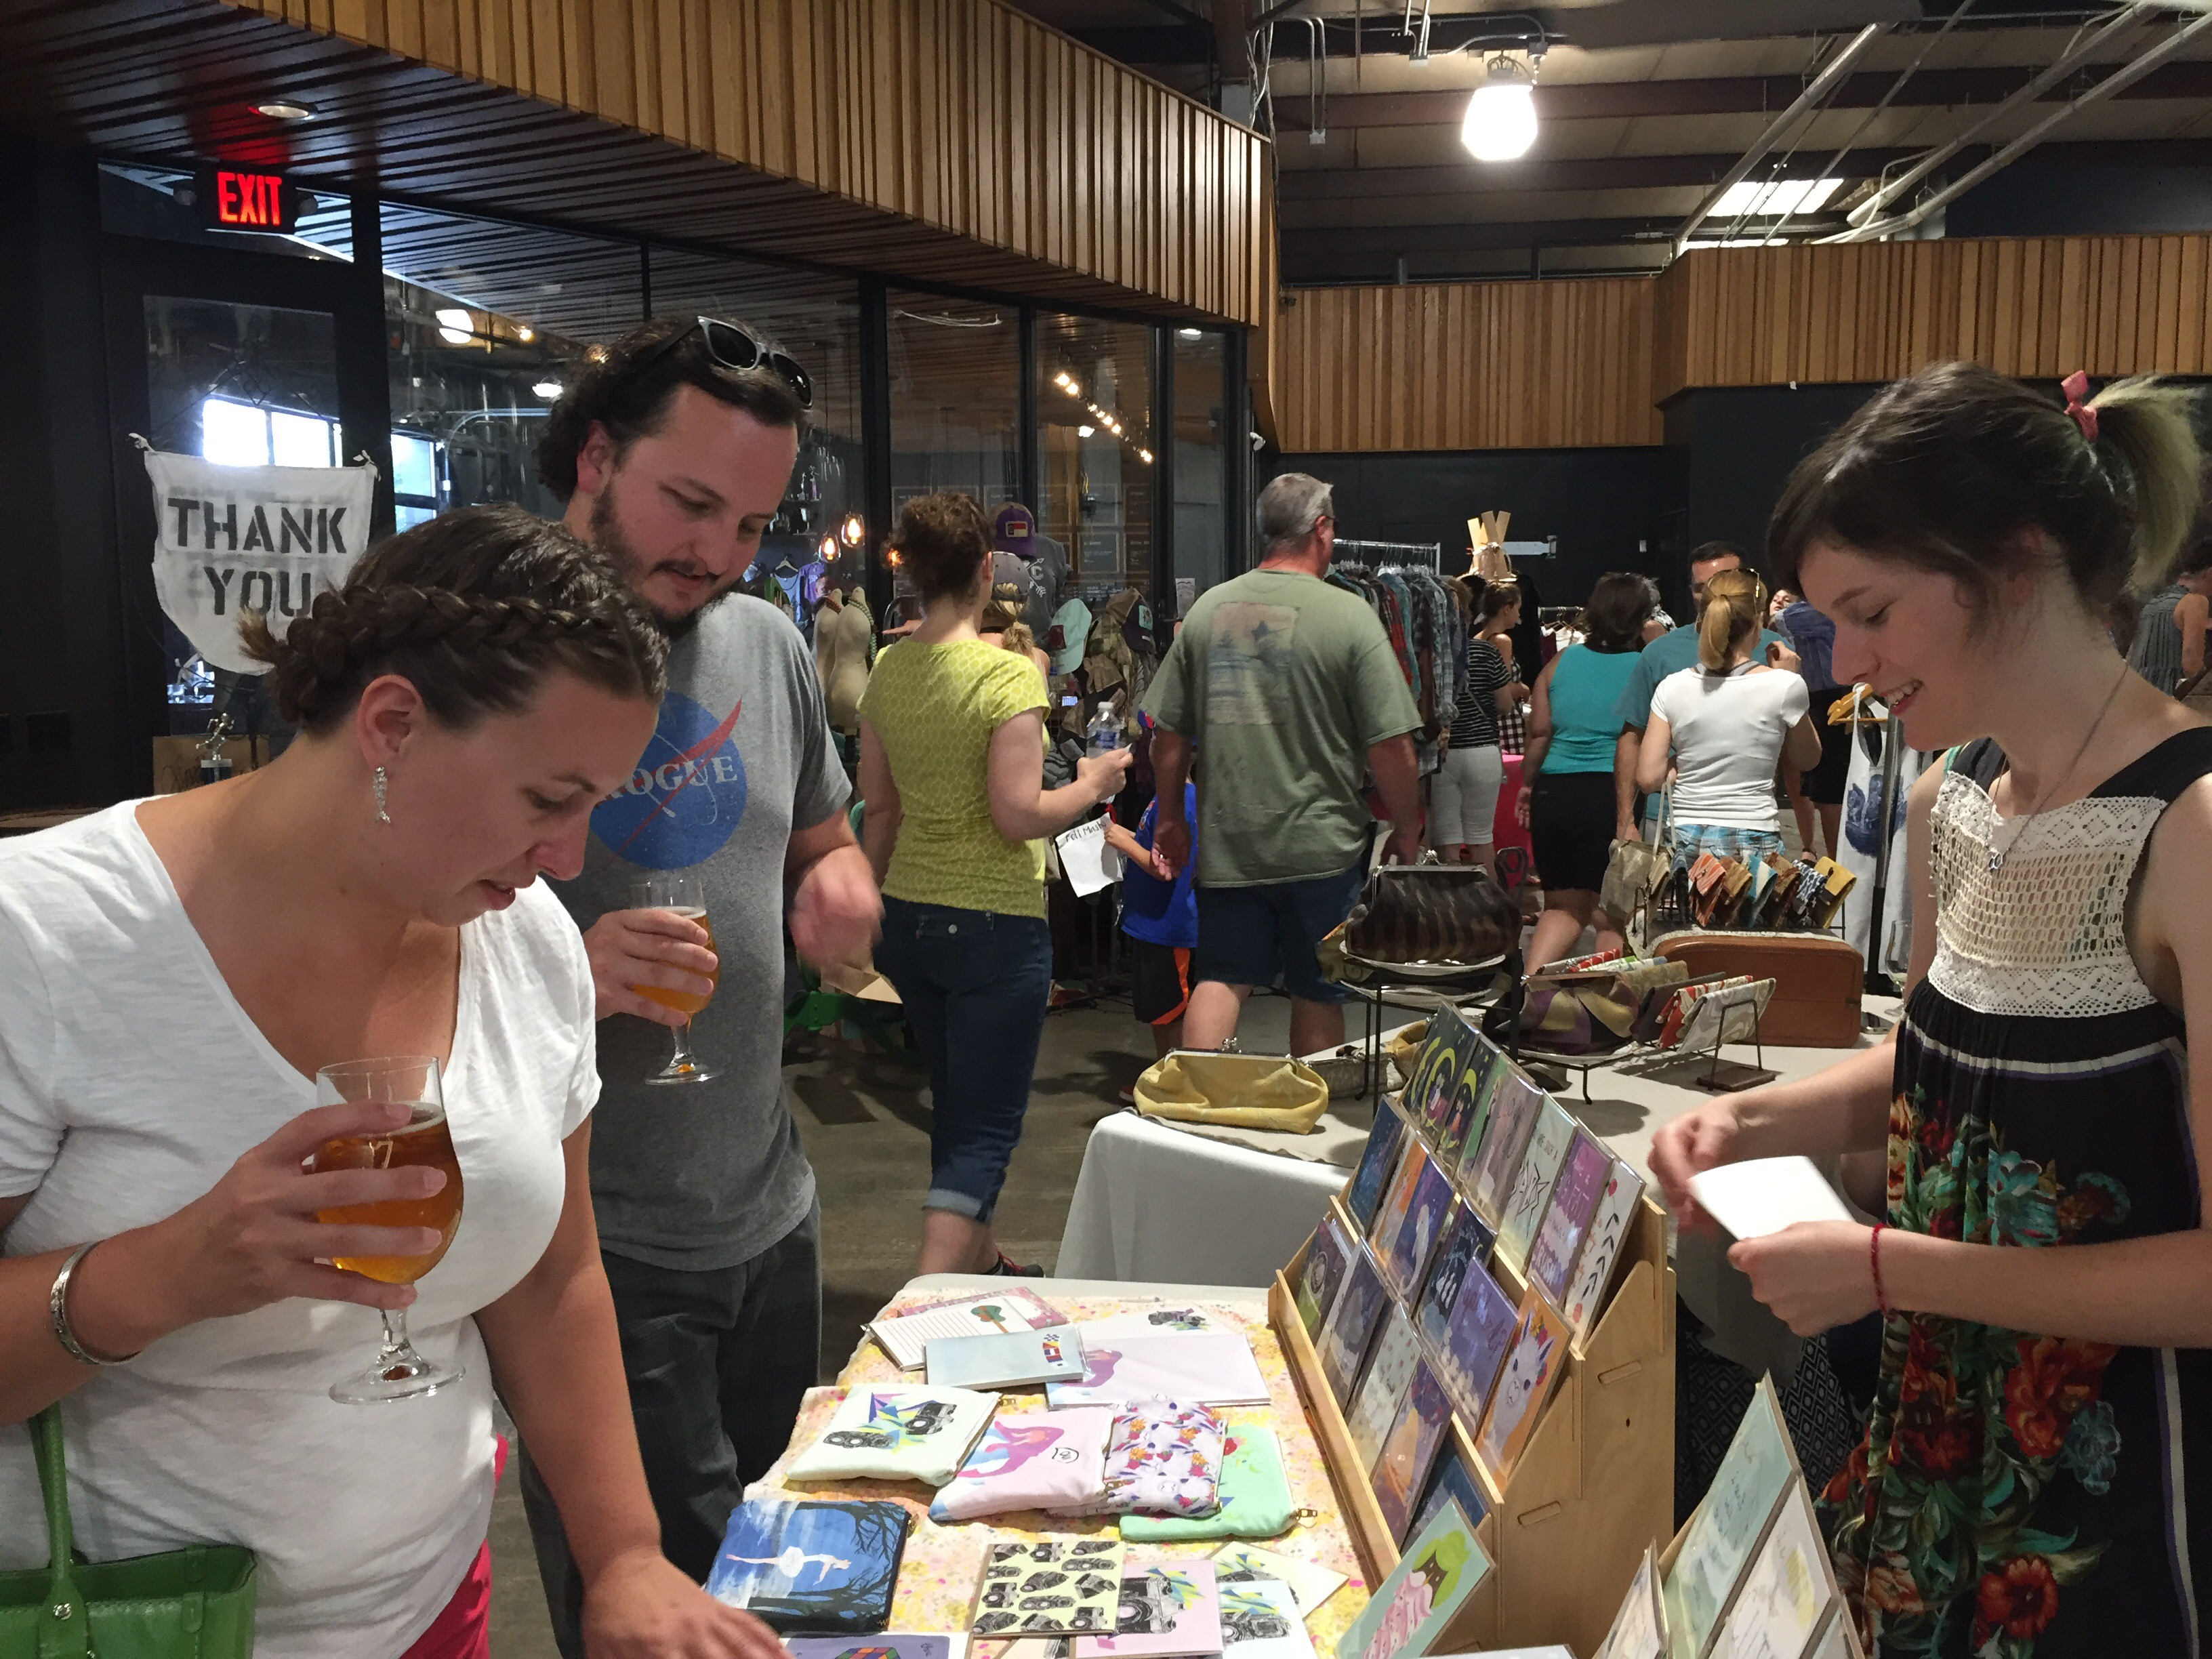 Our August Show is THIS Saturday – here's our vendor list